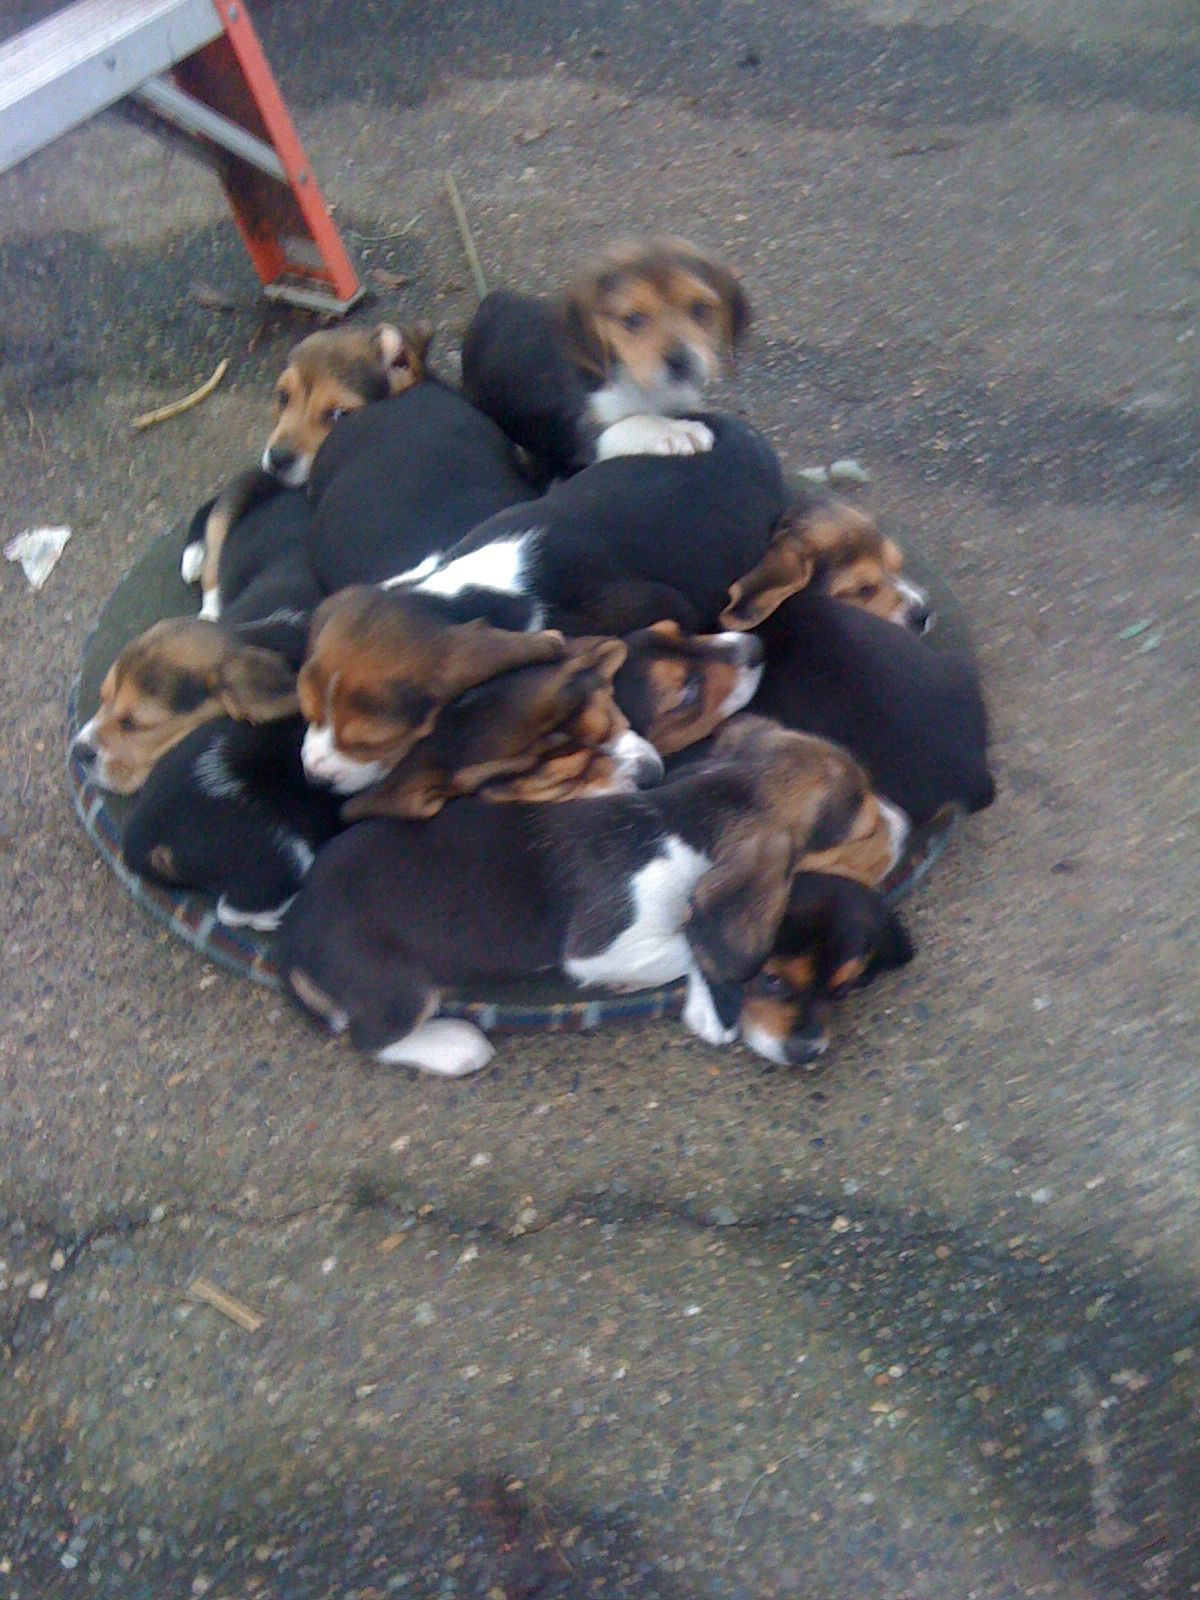 Dog Pile Lol Puppies Cute Animals Doggy